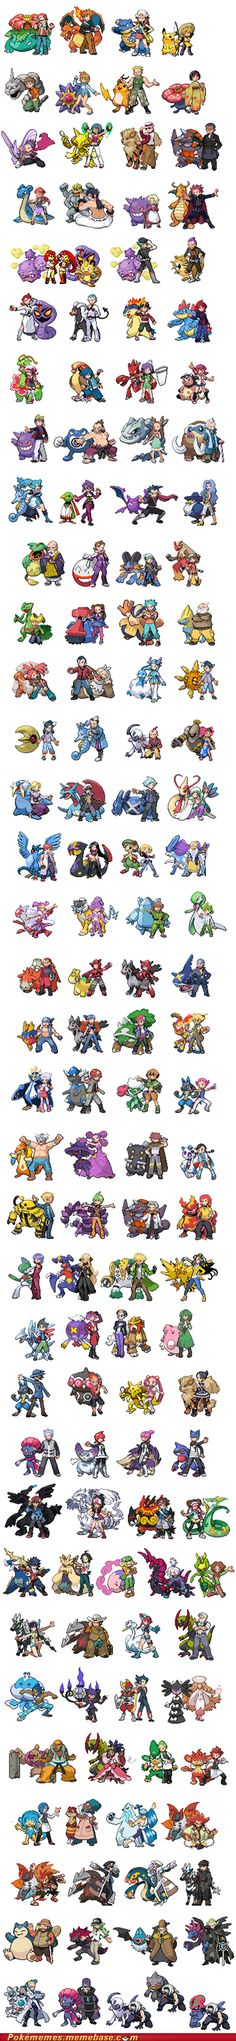 138 Trainers...I only remember a couple of these but loved this as a child